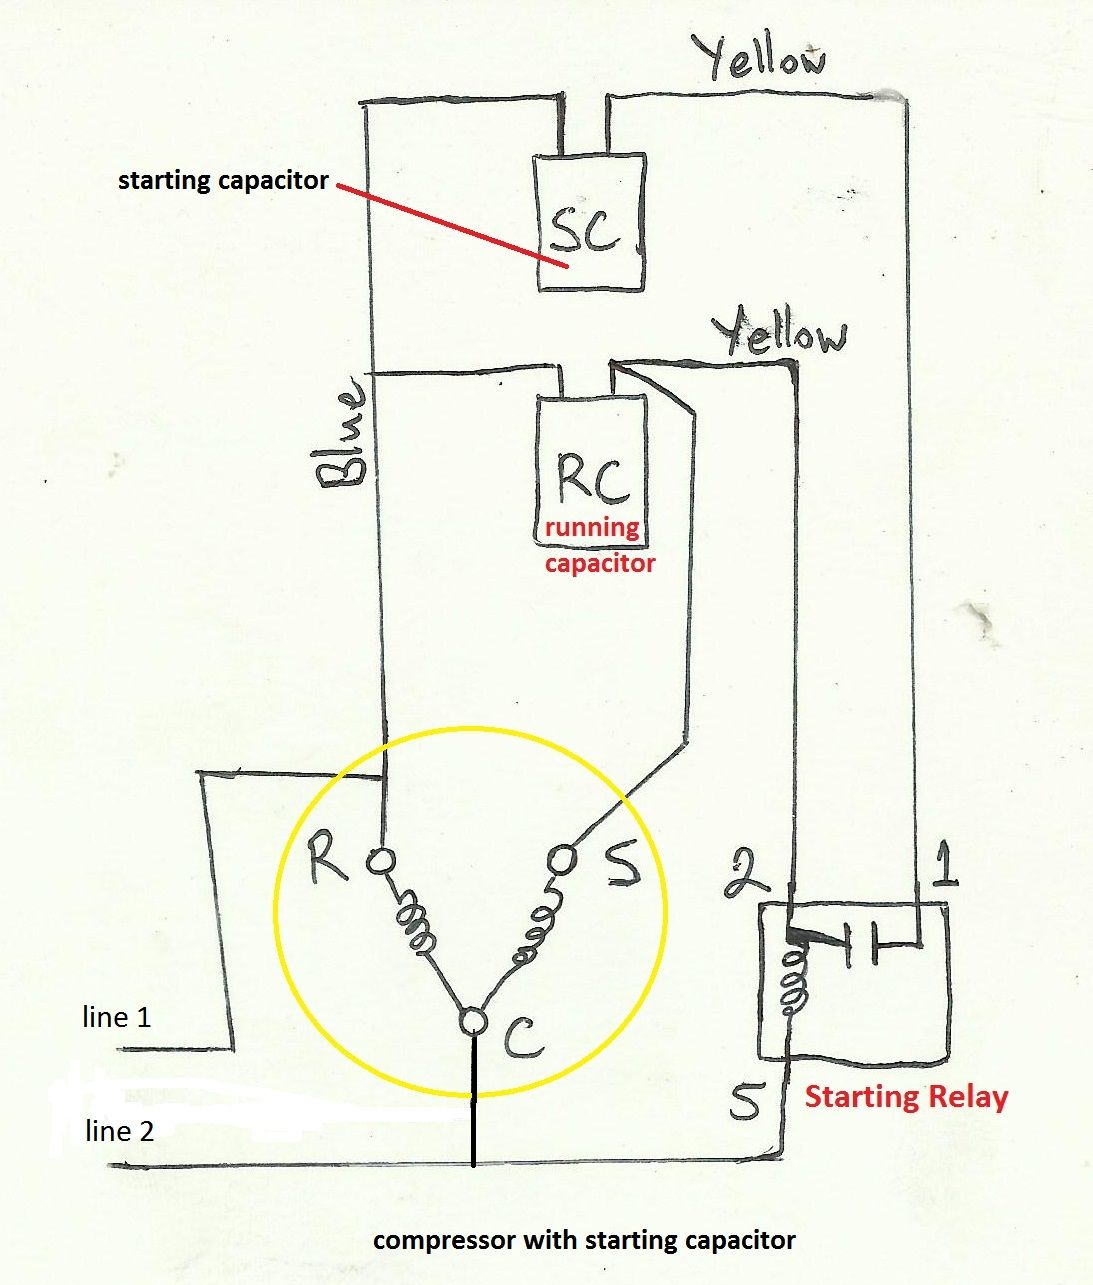 air compressor capacitor wiring diagram before you call a ac repair rh pinterest com Goodman AC Capacitor Wiring Small AC Fan Start Capacitor Wiring